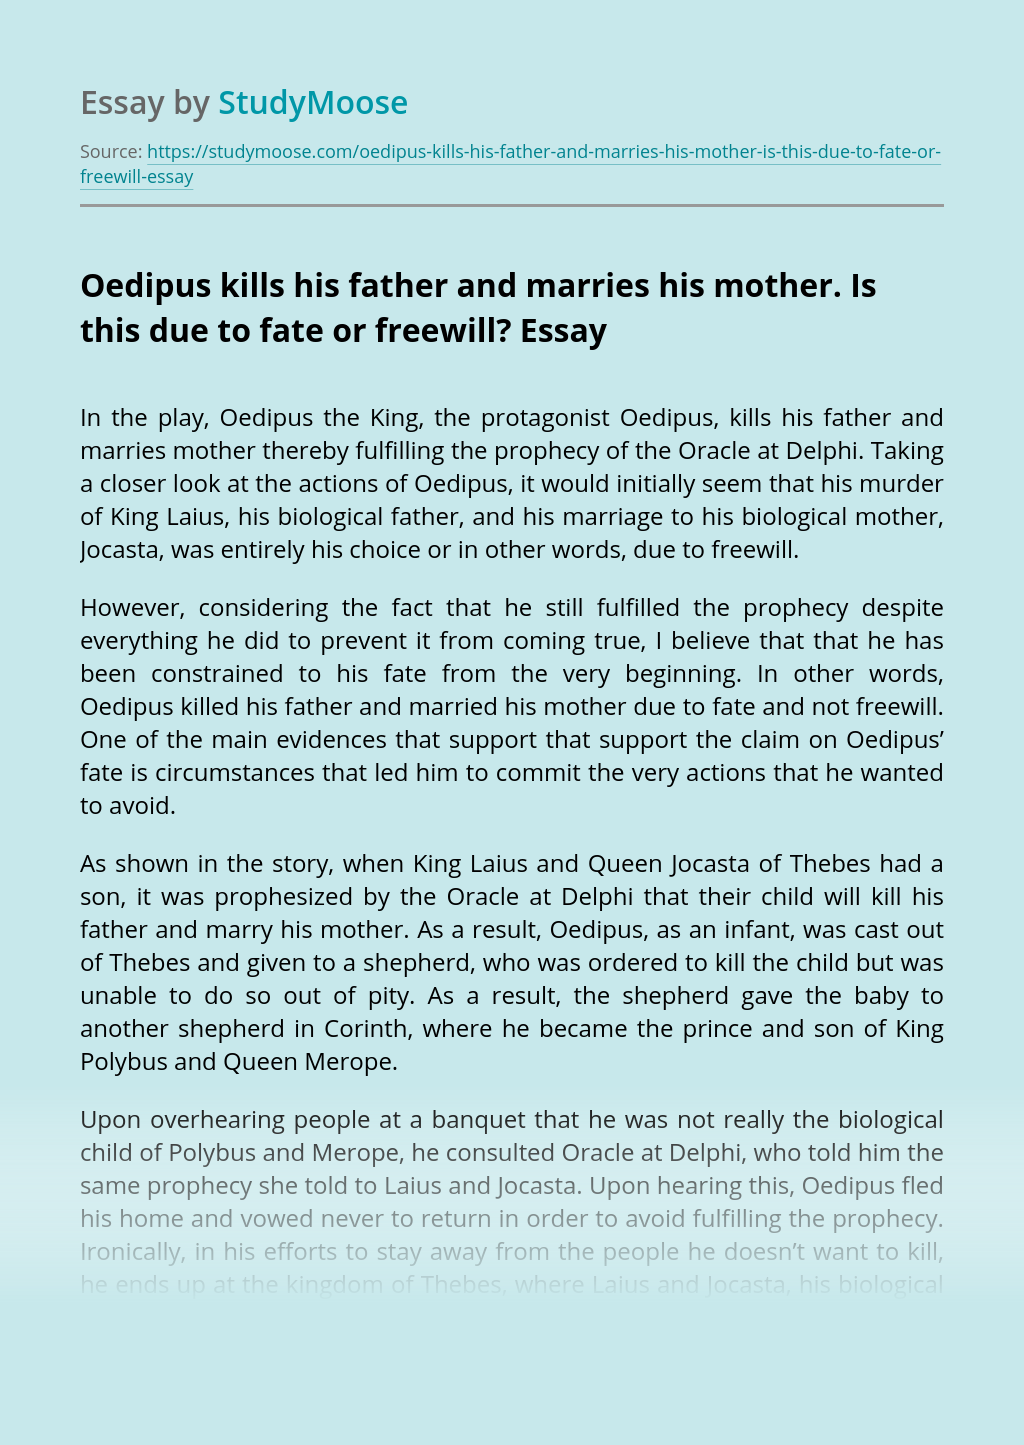 Oedipus kills his father and marries his mother. Is this due to fate or freewill?